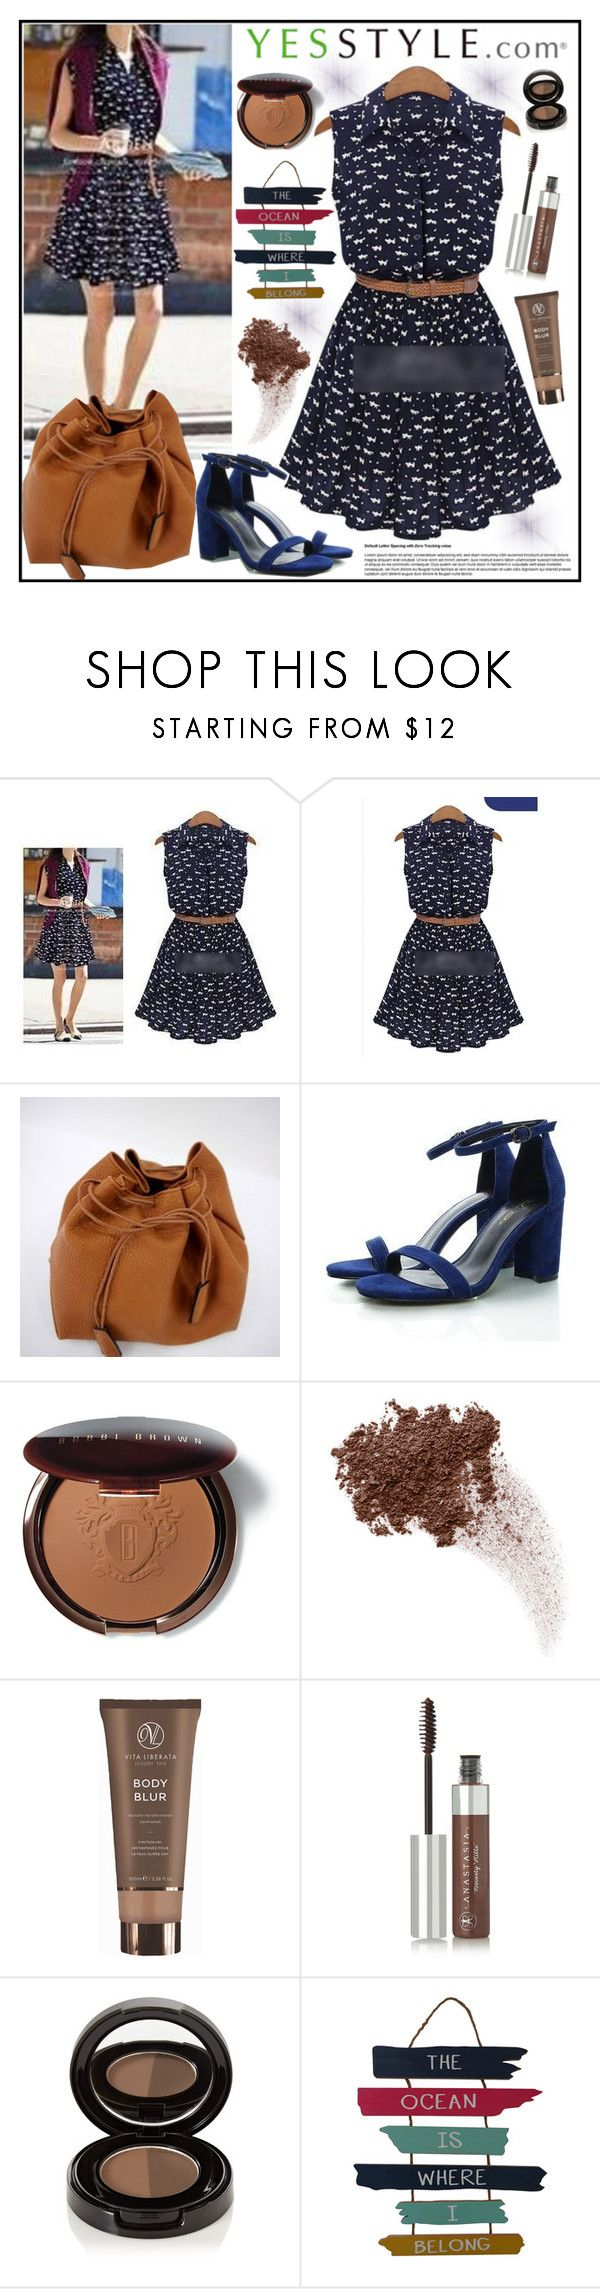 """YesStyle - 10% off coupon"" by gaby-mil ❤ liked on Polyvore featuring Arroba, Bobbi Brown Cosmetics, Bare Escentuals, Vita Liberata, Anastasia Beverly Hills, party, anniversary, celebration and yesstyle"